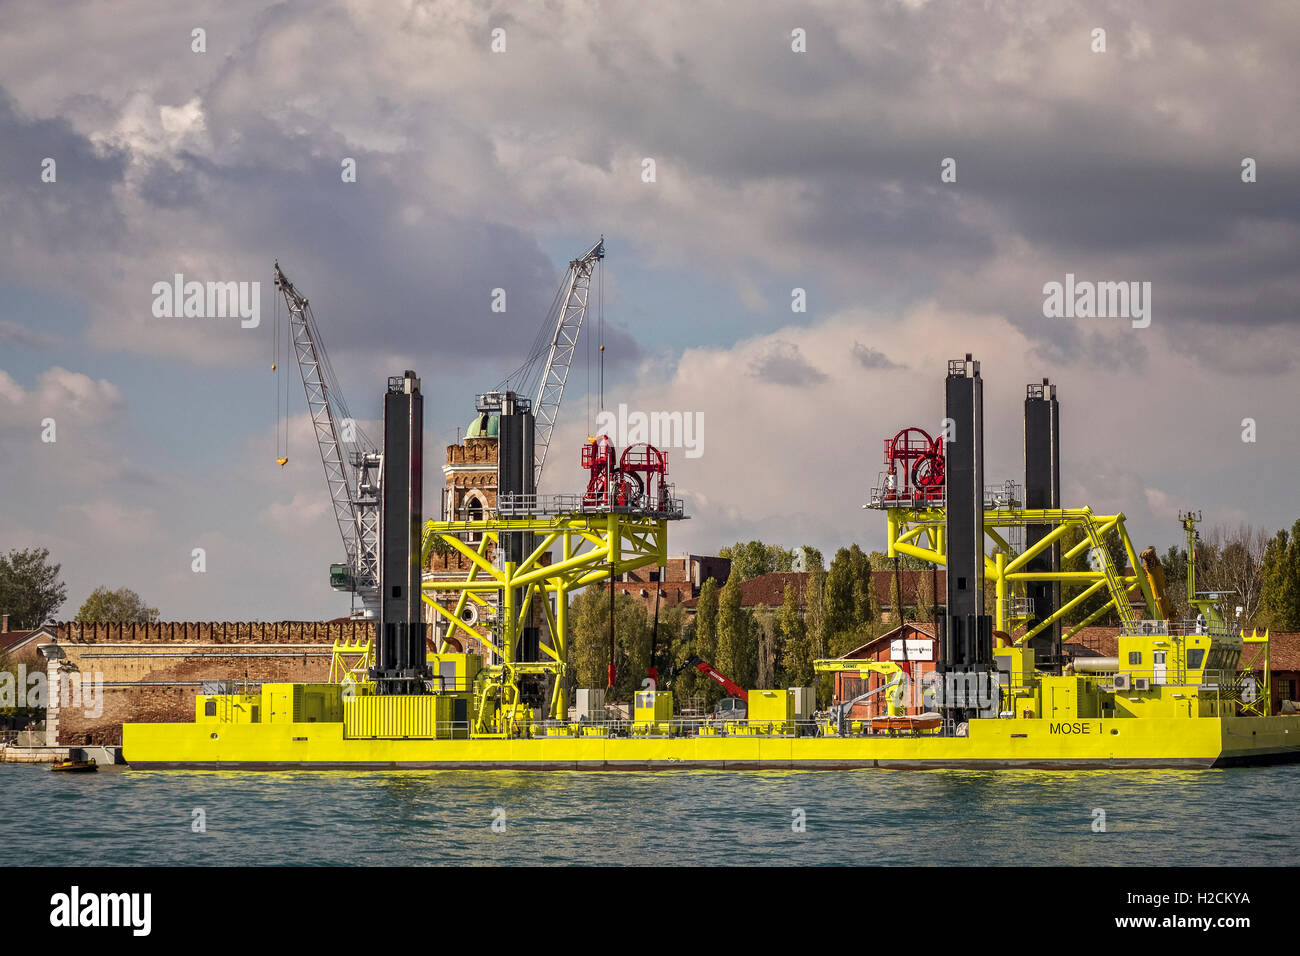 Ship Part Of The Mose Flood Protection Project Venice Italy Stock Photo